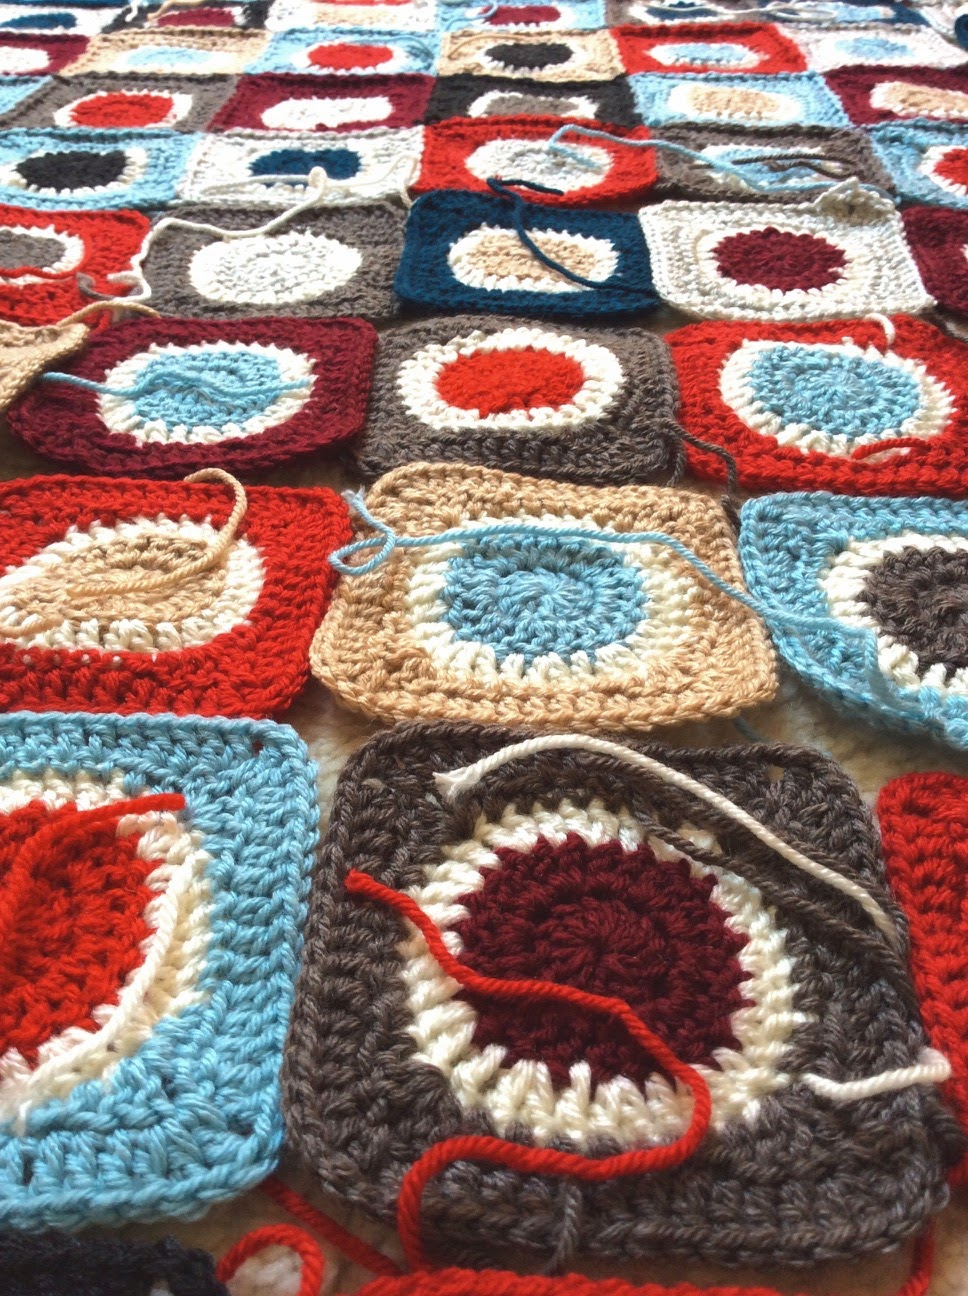 Häkeldecke, Kreise im Quadrat,  Crochet Babyplaid,  Anton Circles in-a-Square, Crochet-Patchwork,